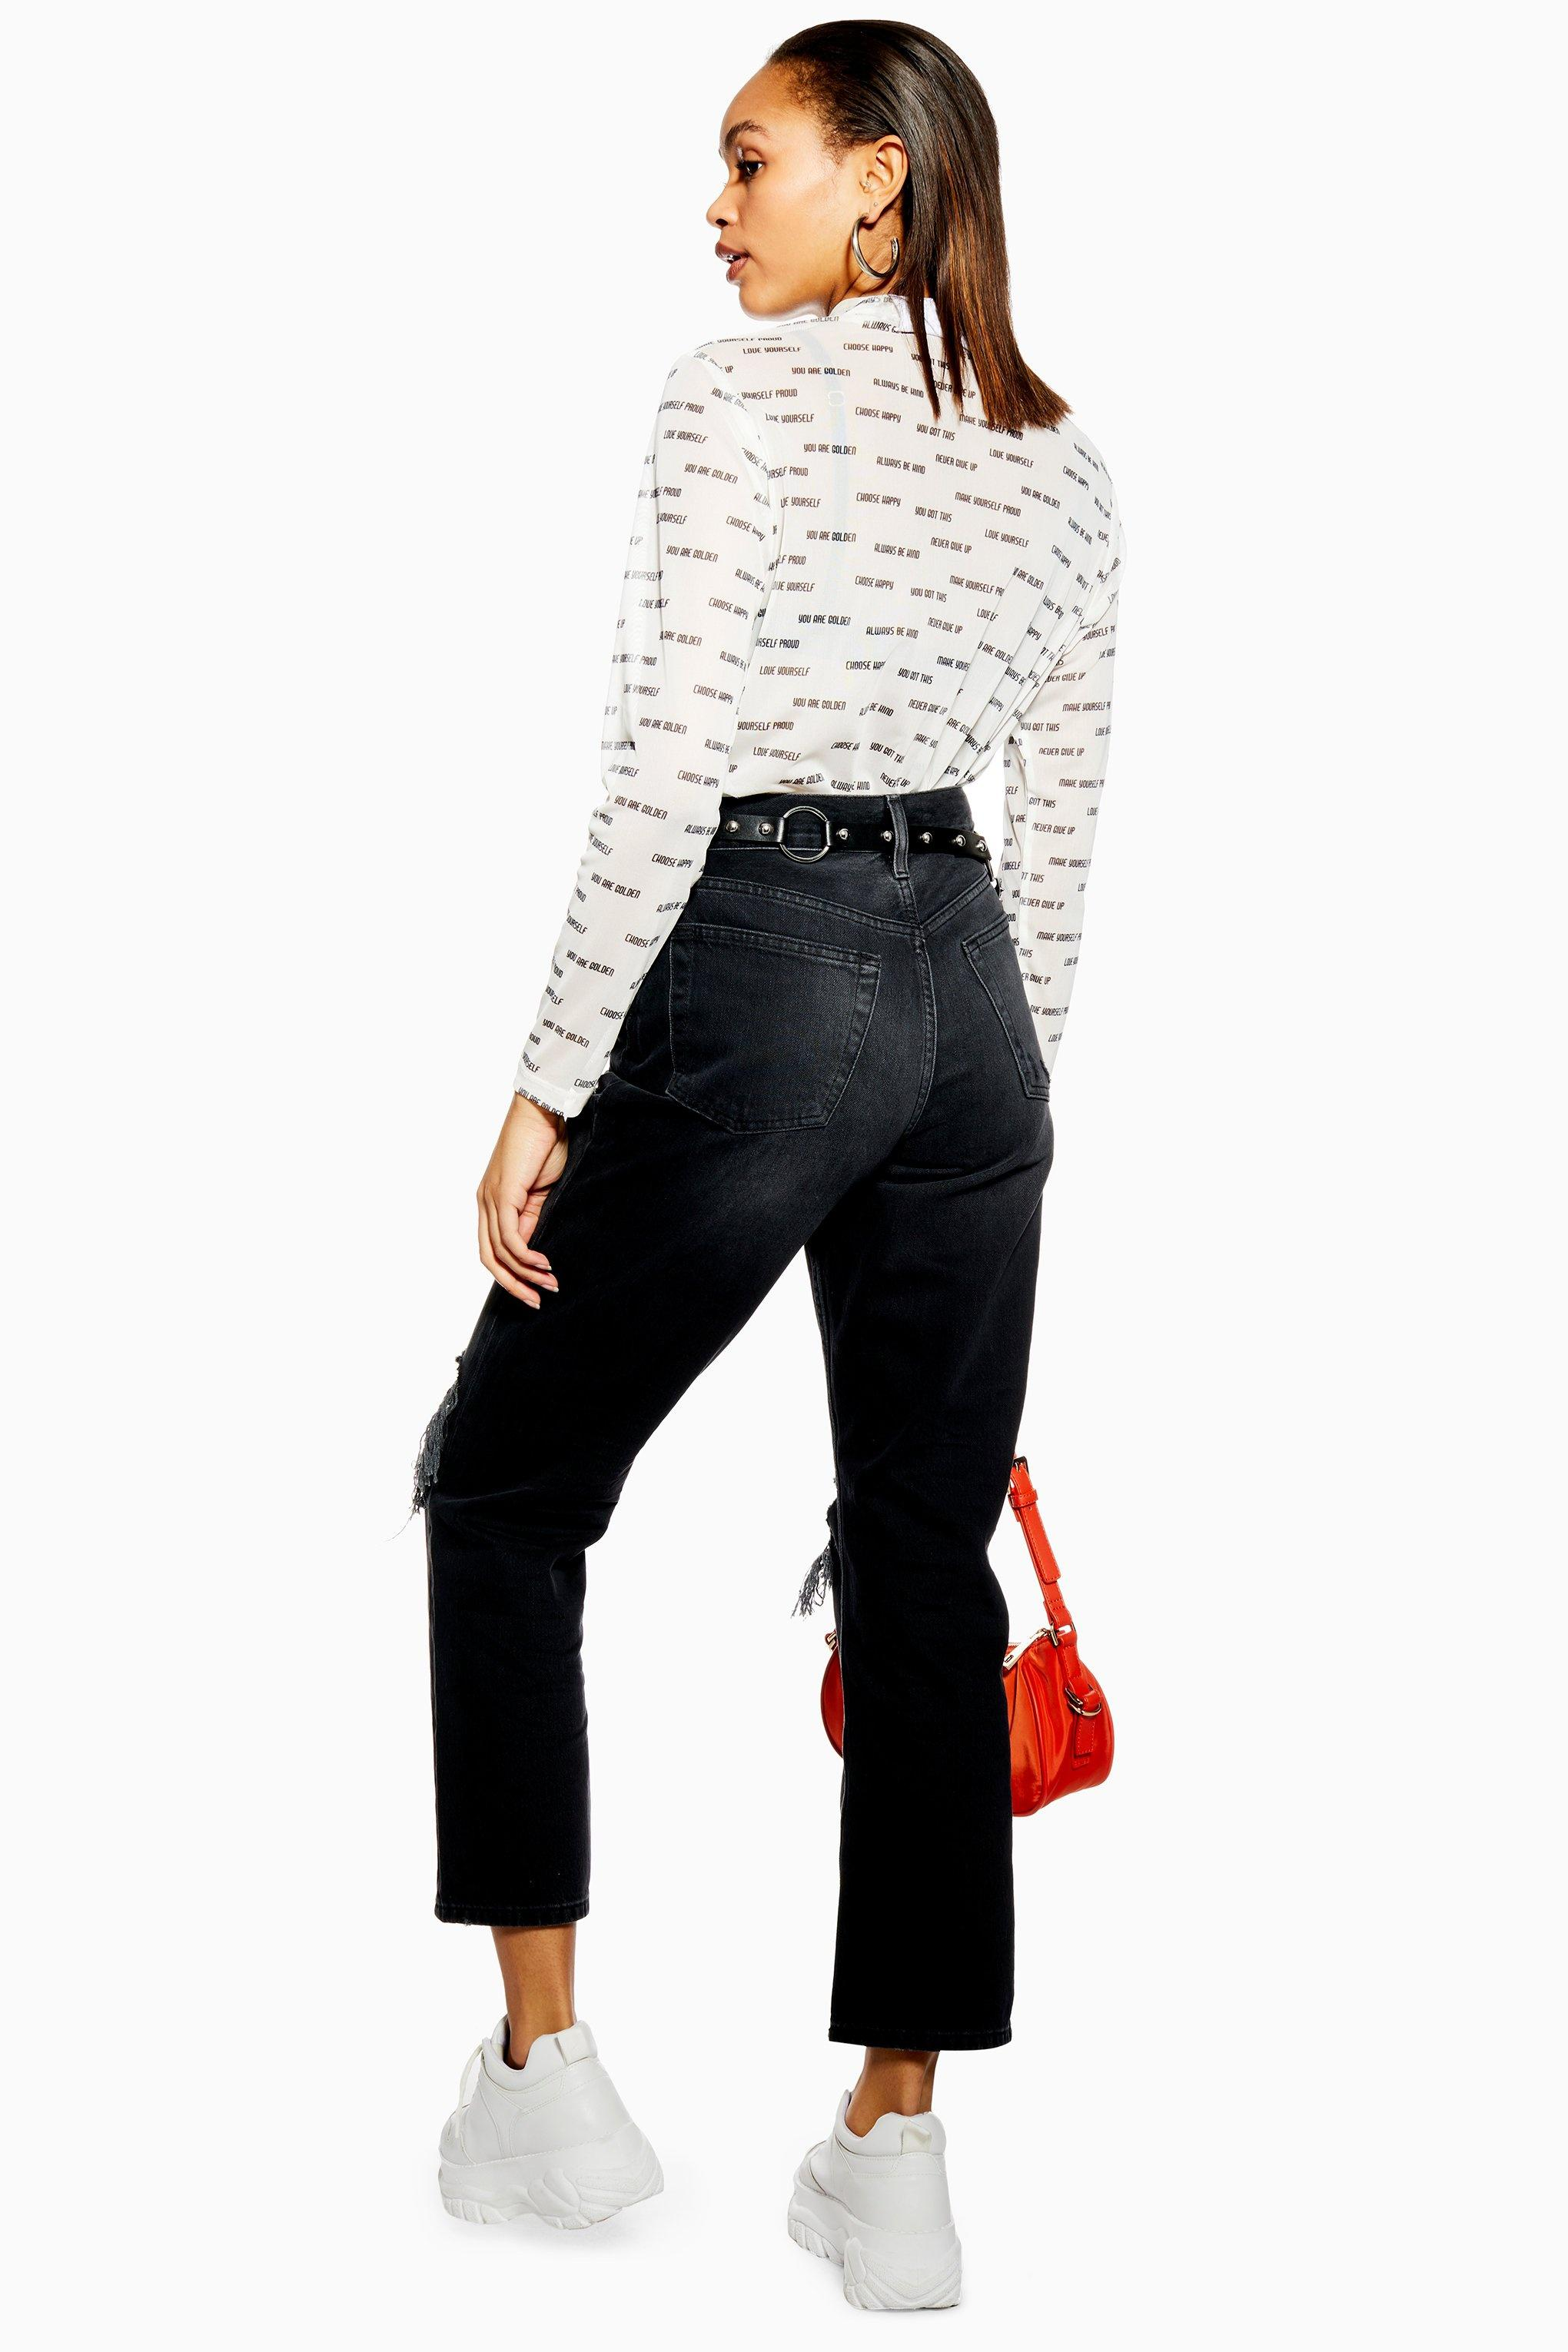 92ccf019a6c91b TOPSHOP Washed Black Ripped Dad Jeans in Black - Lyst